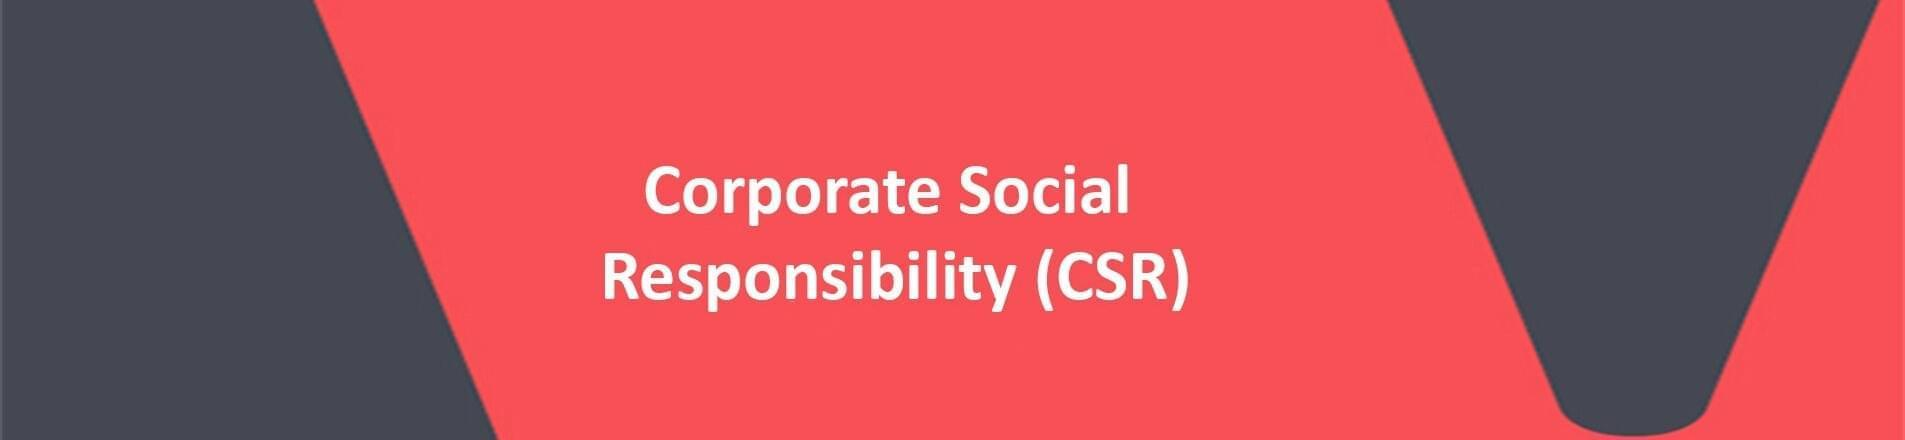 Corporate Social Responsibility on red VERCIDA background